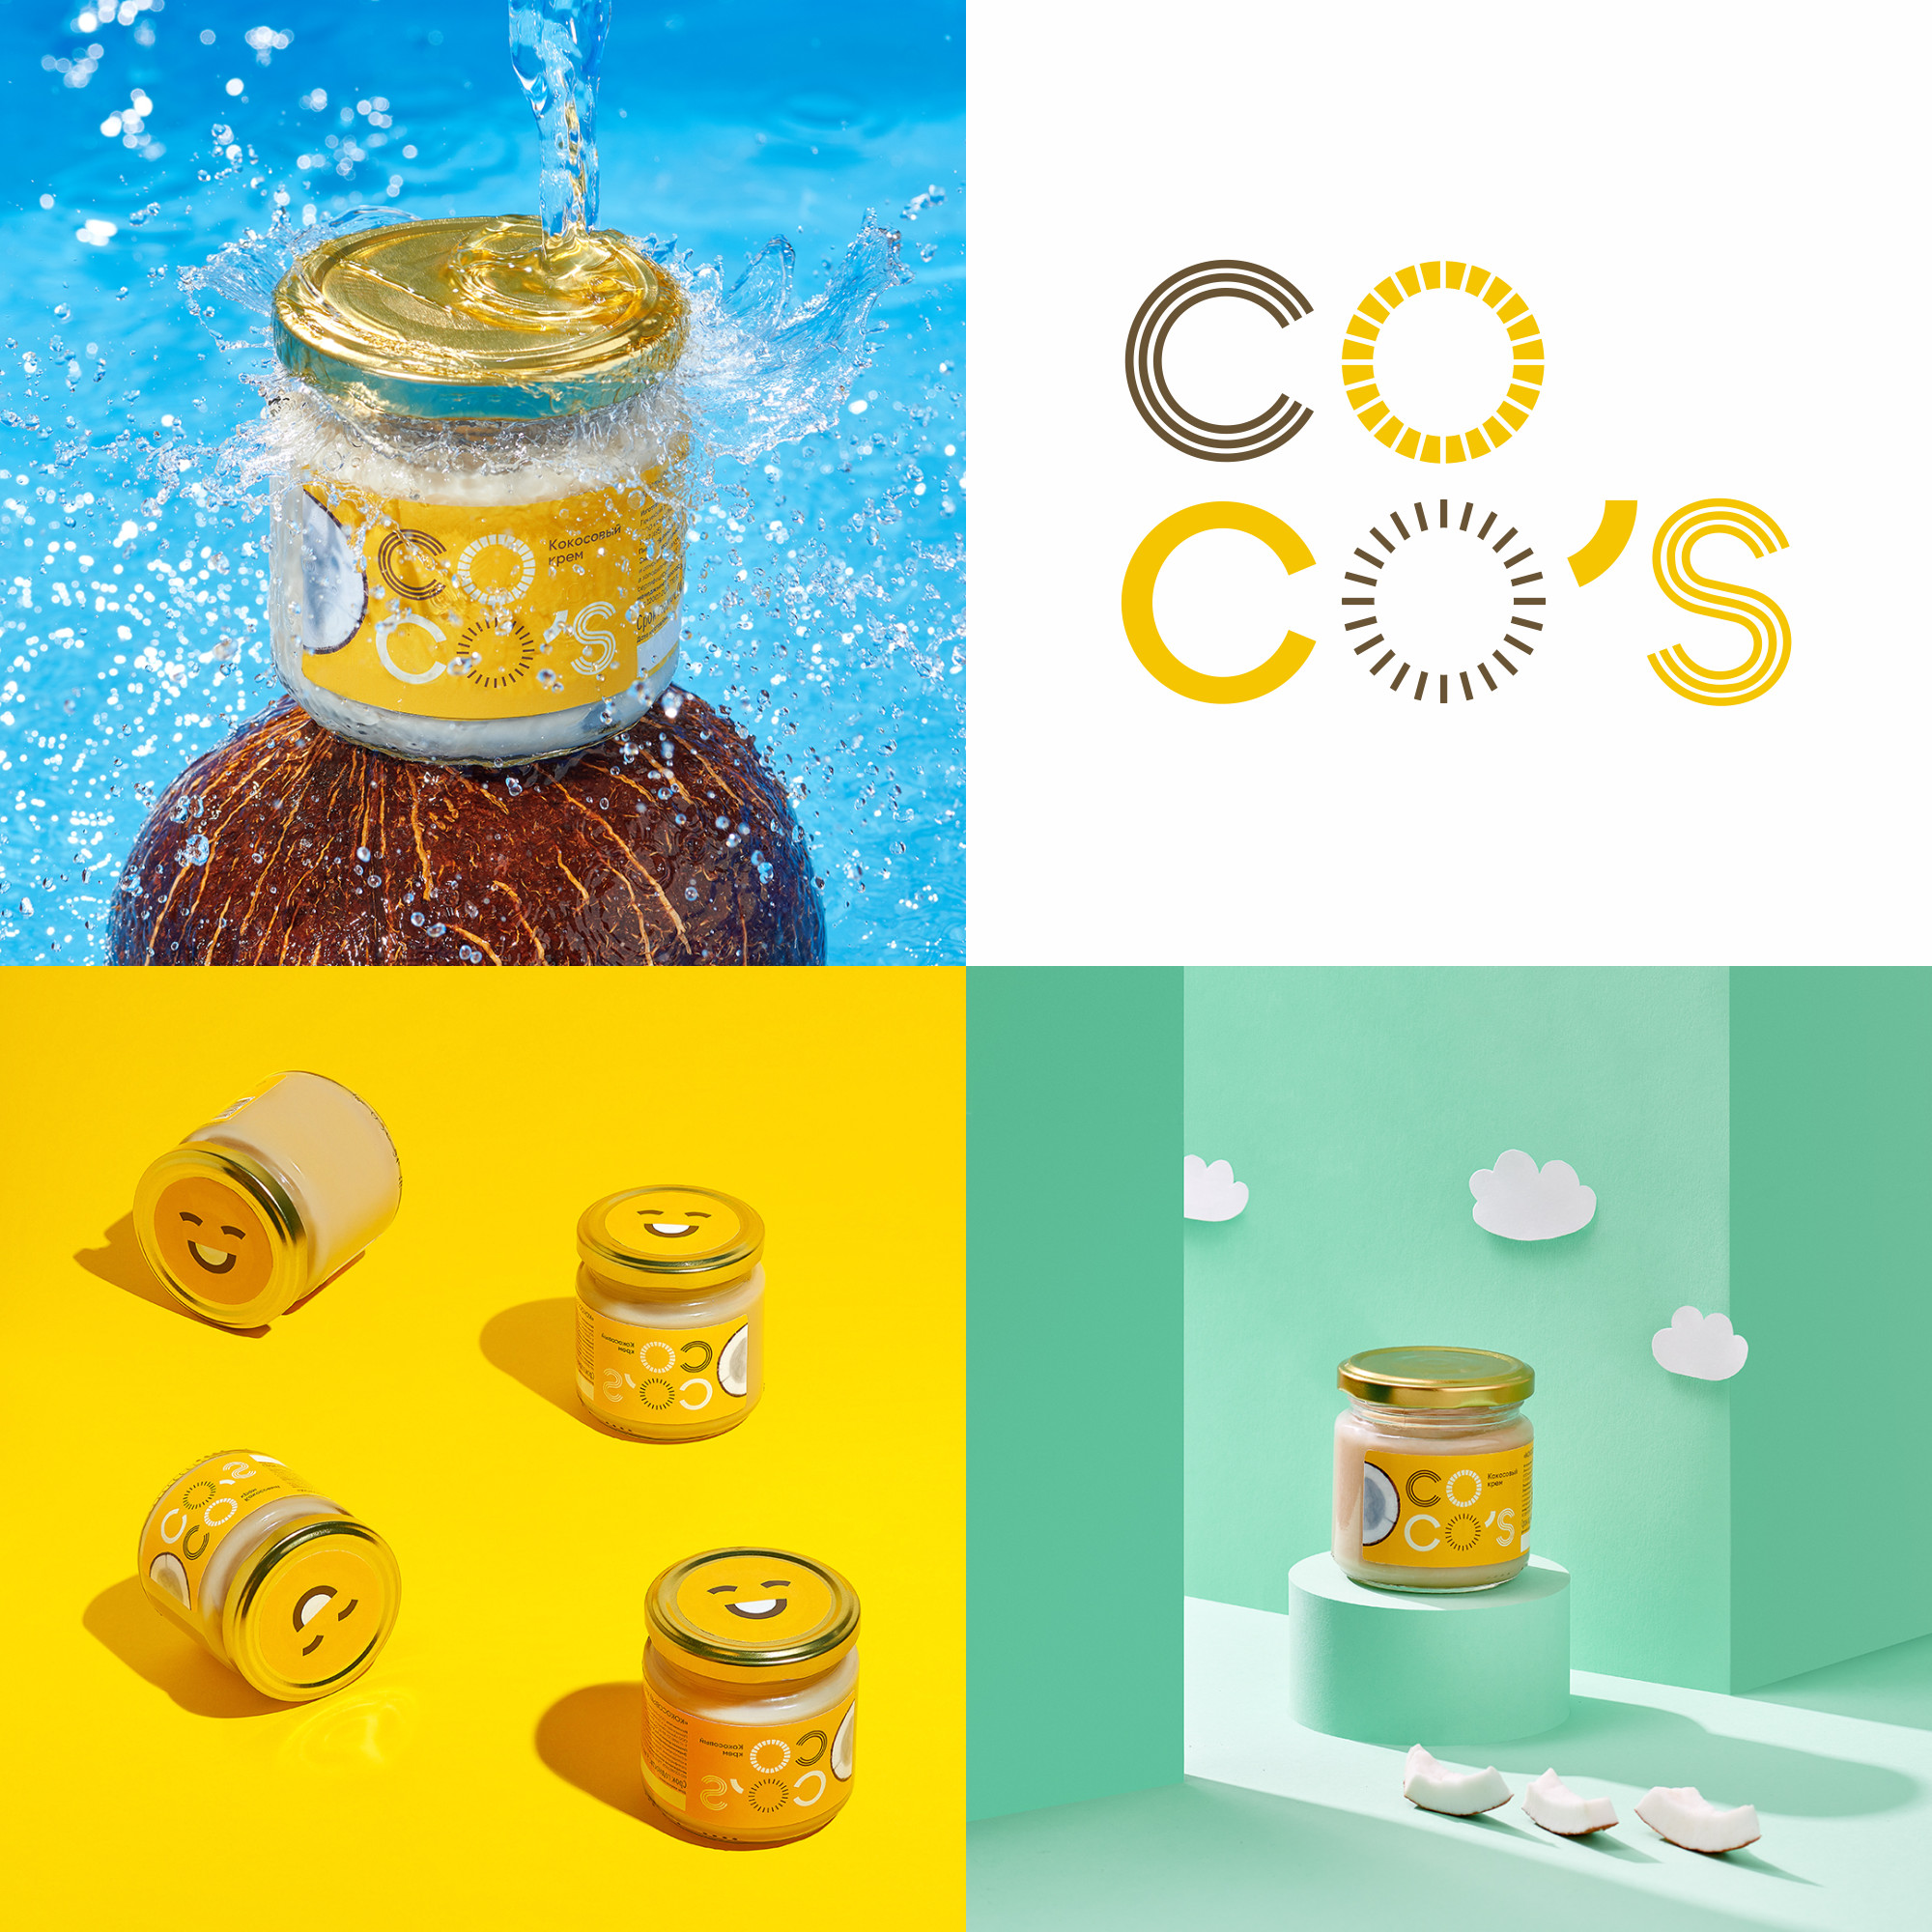 None Branding Agency Create Brand and Packaging Design for Coconut Cream